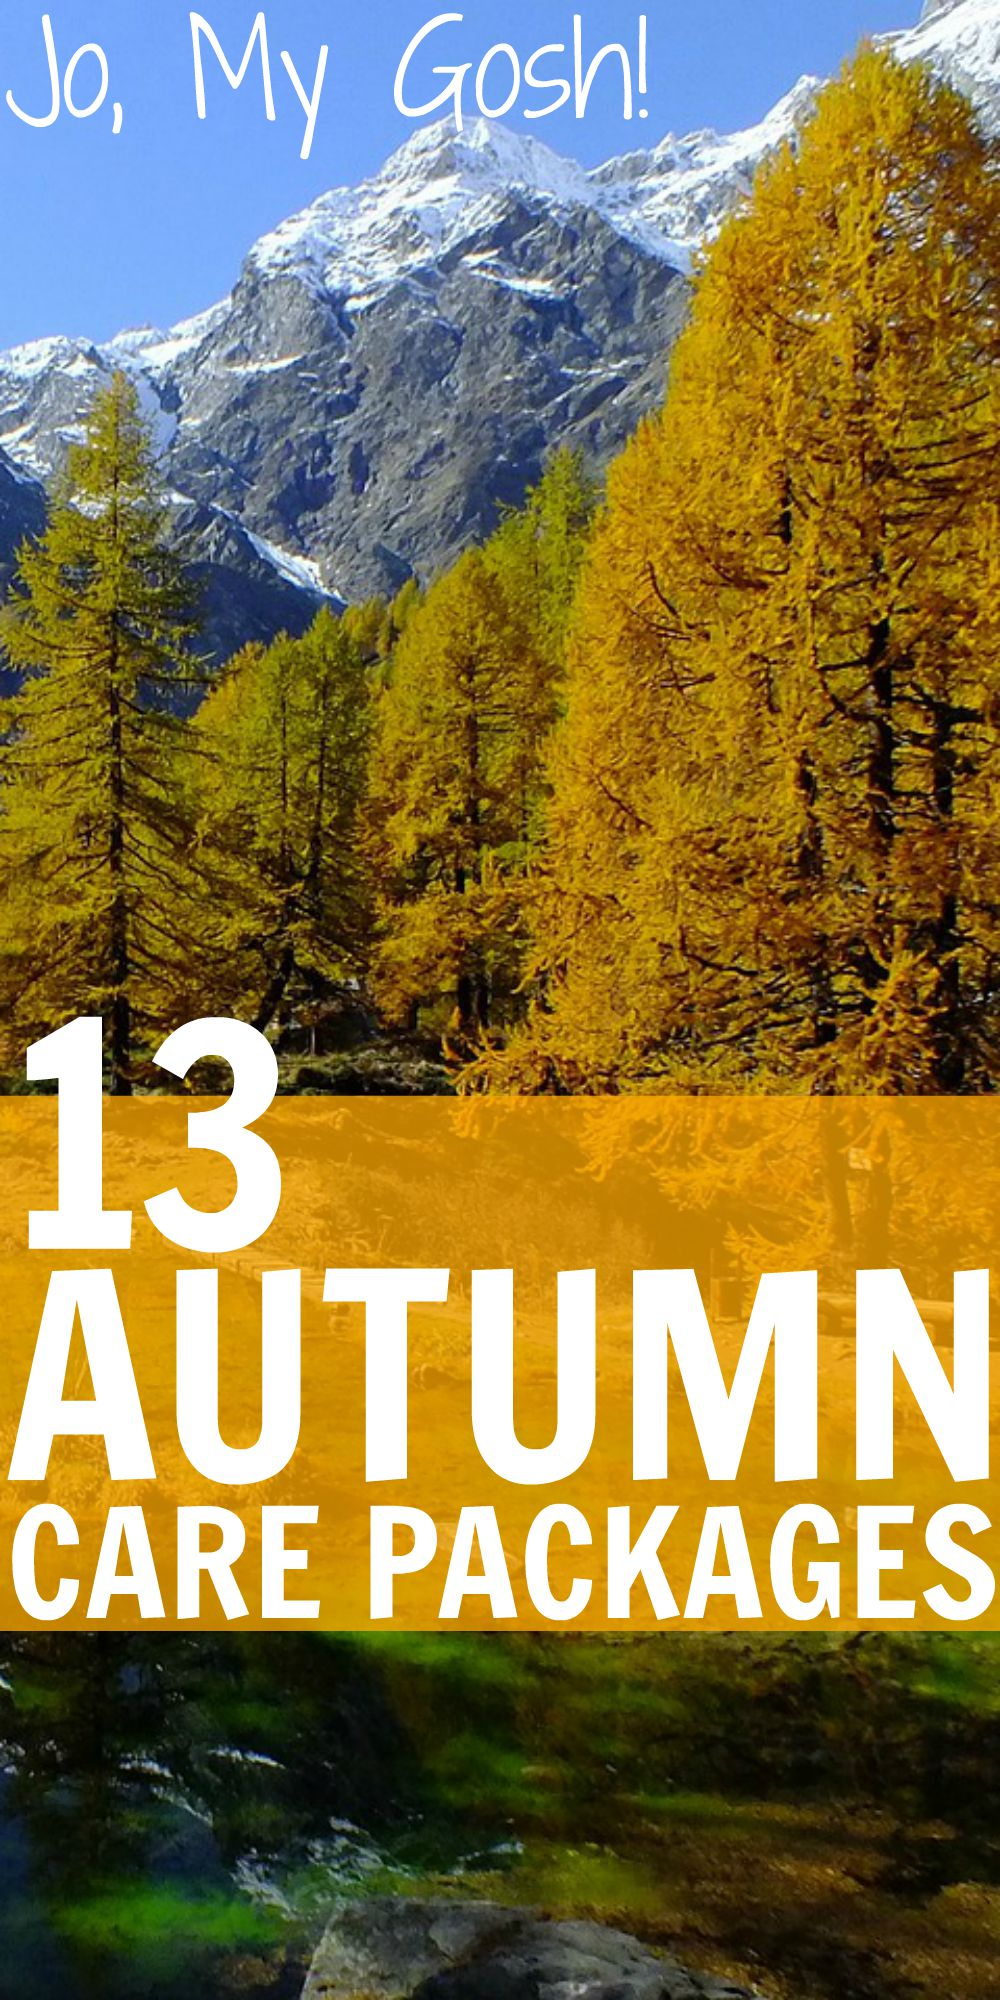 13 care packages for autumn. Fall recipes, DIYs, and gifts included!